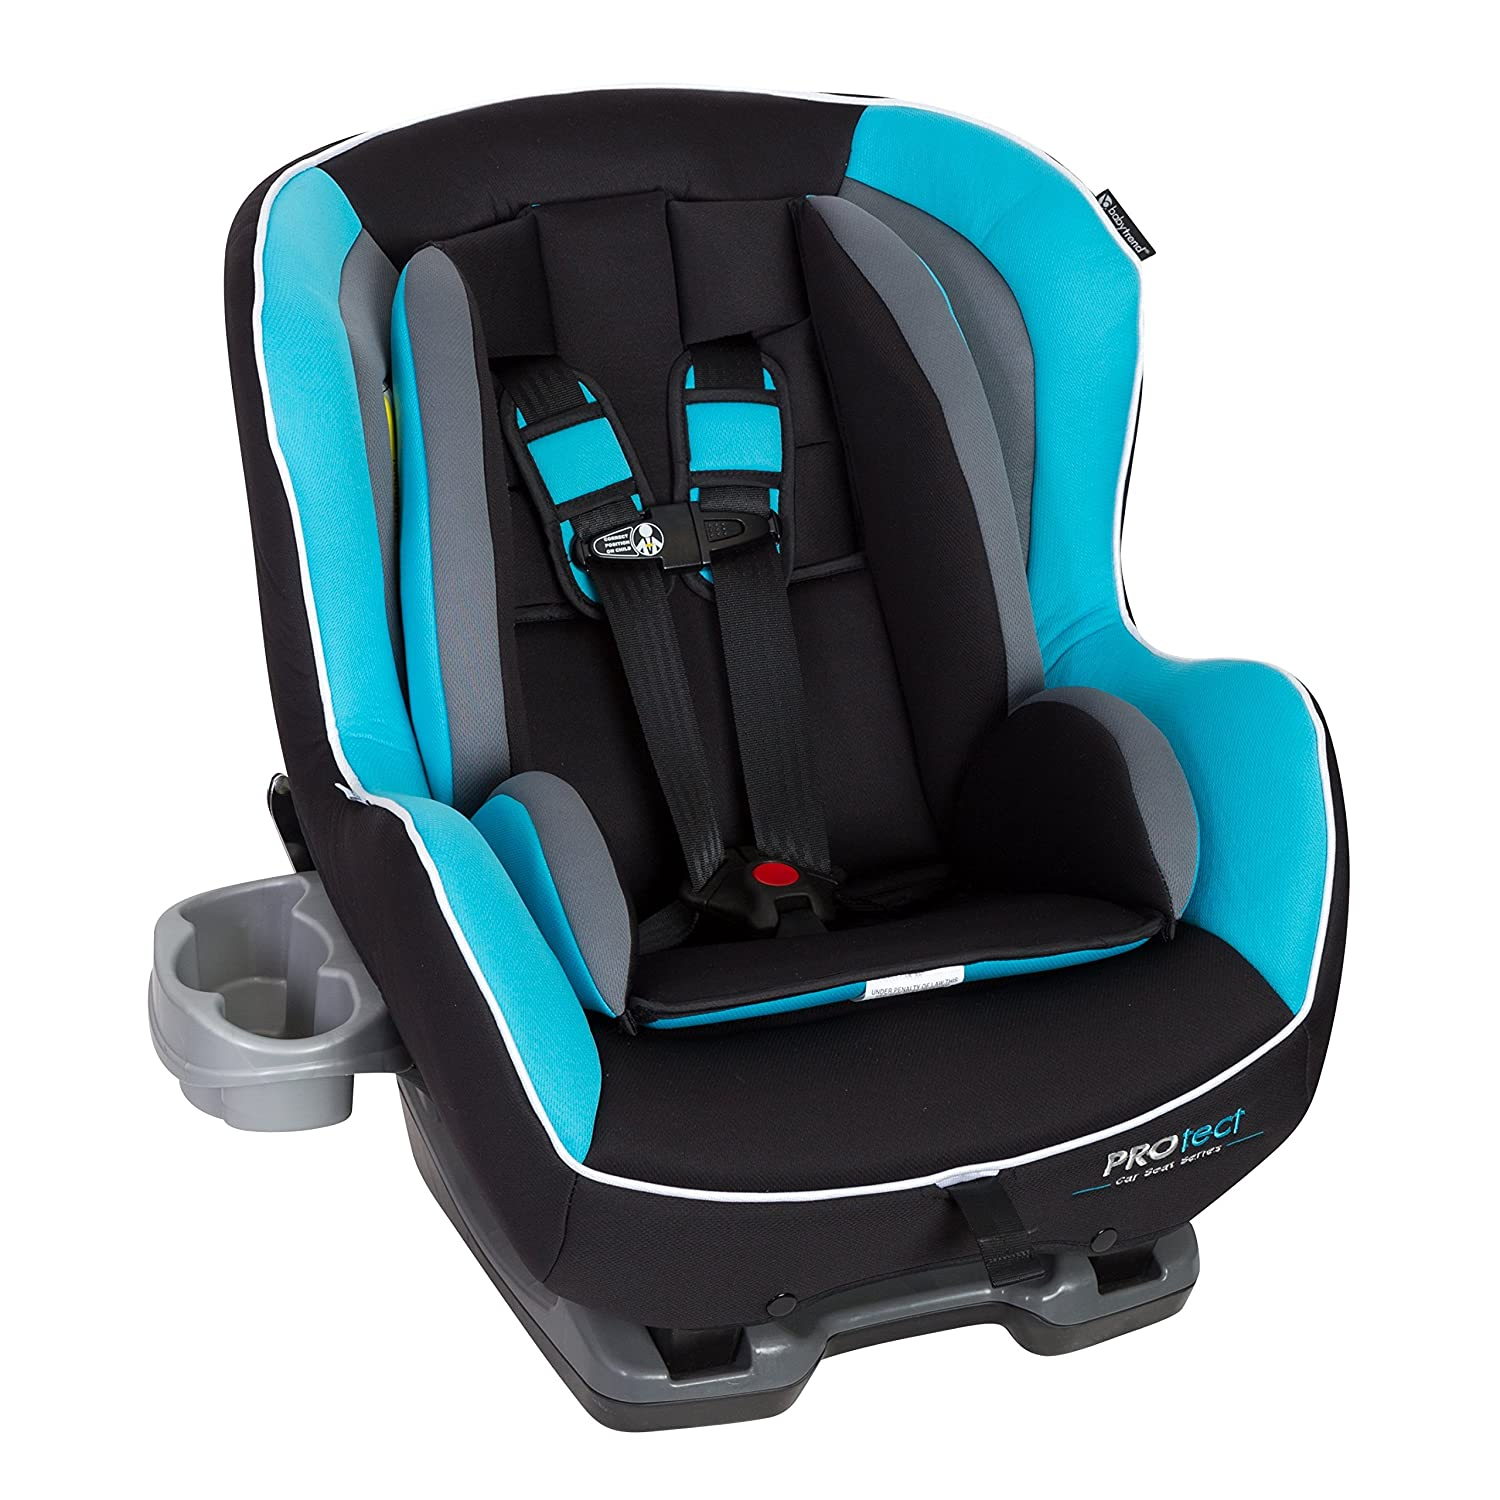 Amazon.com : Baby Trend Protect Series Premiere Convertible Car Seat ...